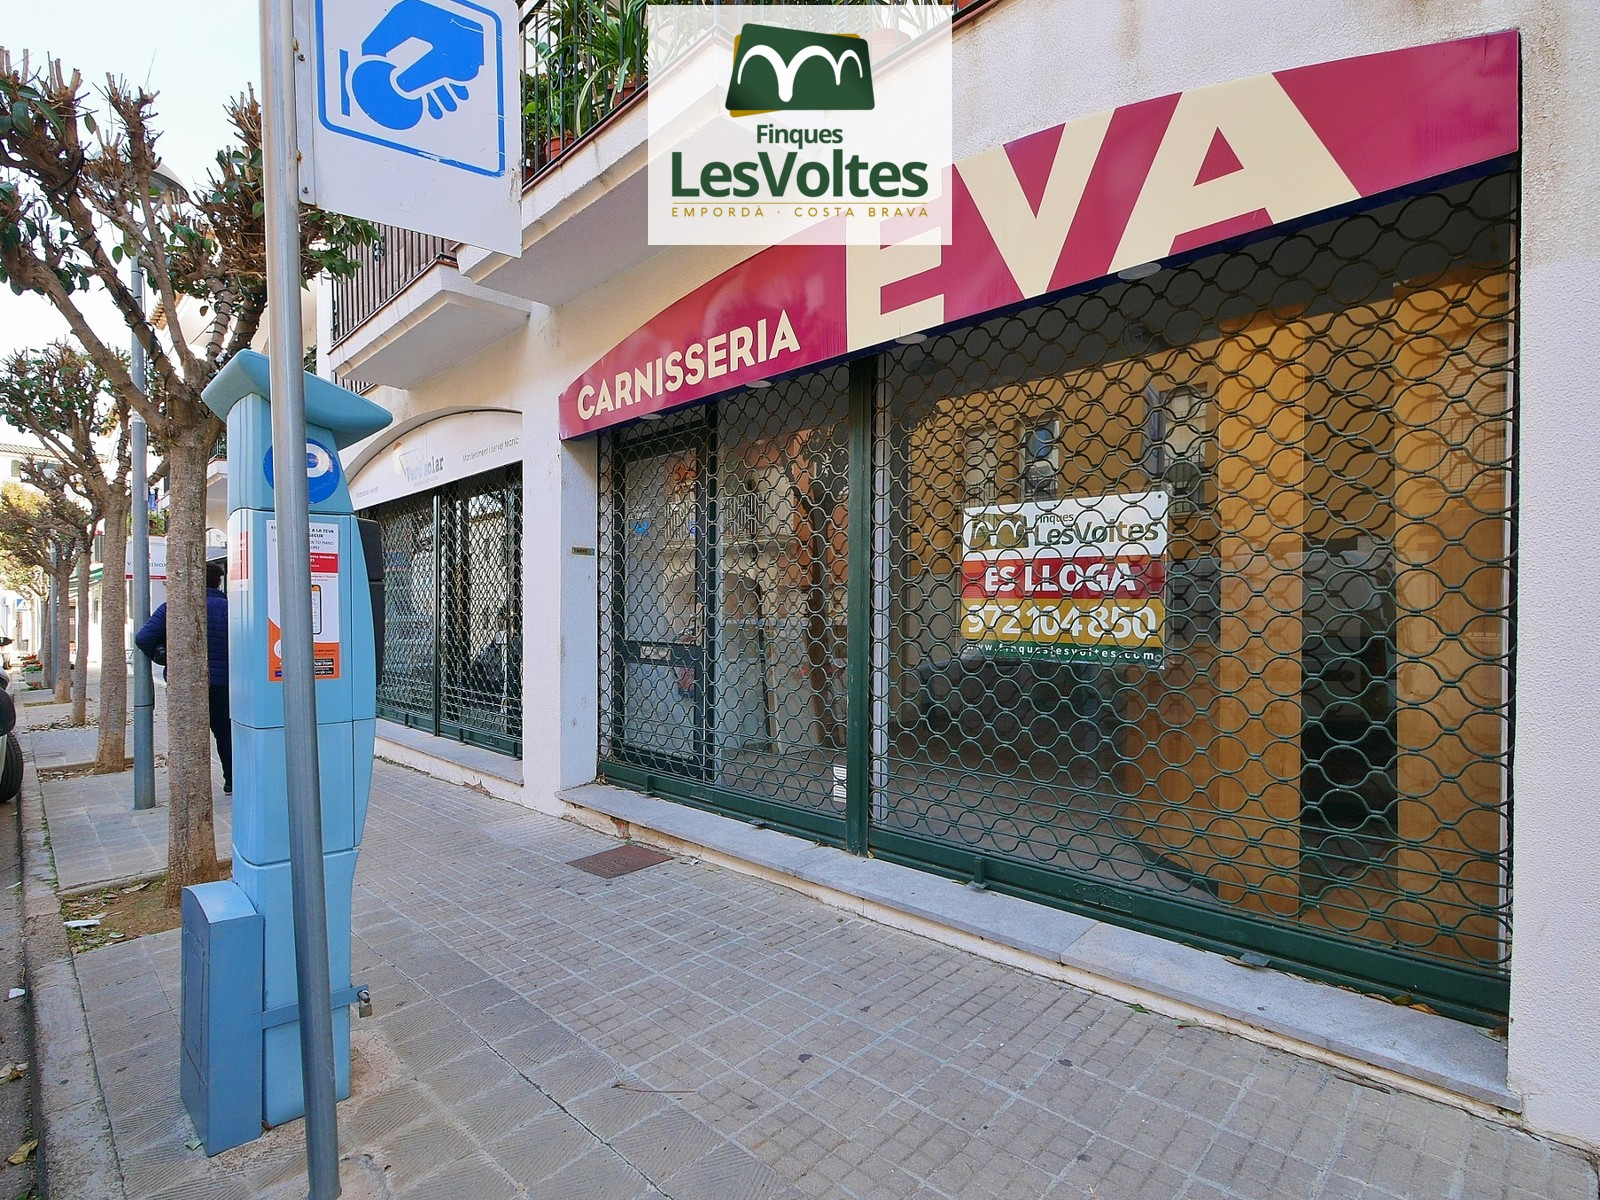 55 m2 commercial space with access from two streets for rent in Las Palmeras de Palafrugell.